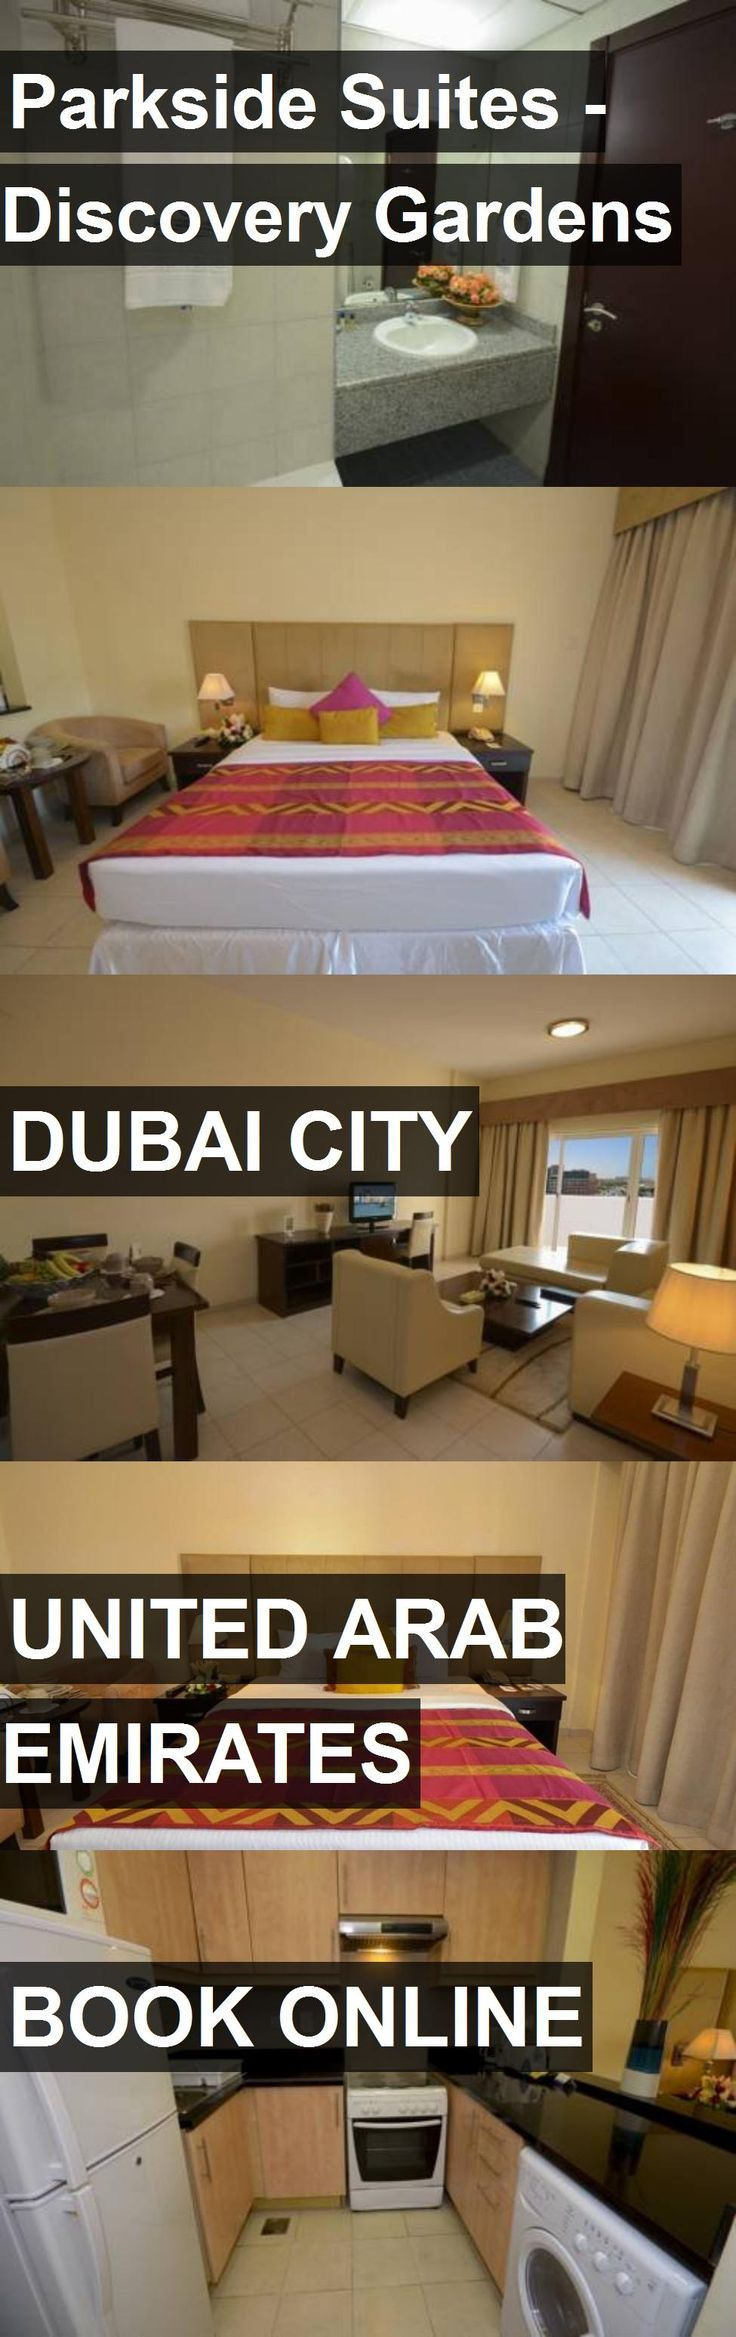 Hotel Parkside Suites - Discovery Gardens in Dubai City, United Arab Emirates. For more information, photos, reviews and best prices please follow the link. #UnitedArabEmirates #DubaiCity #hotel #travel #vacation